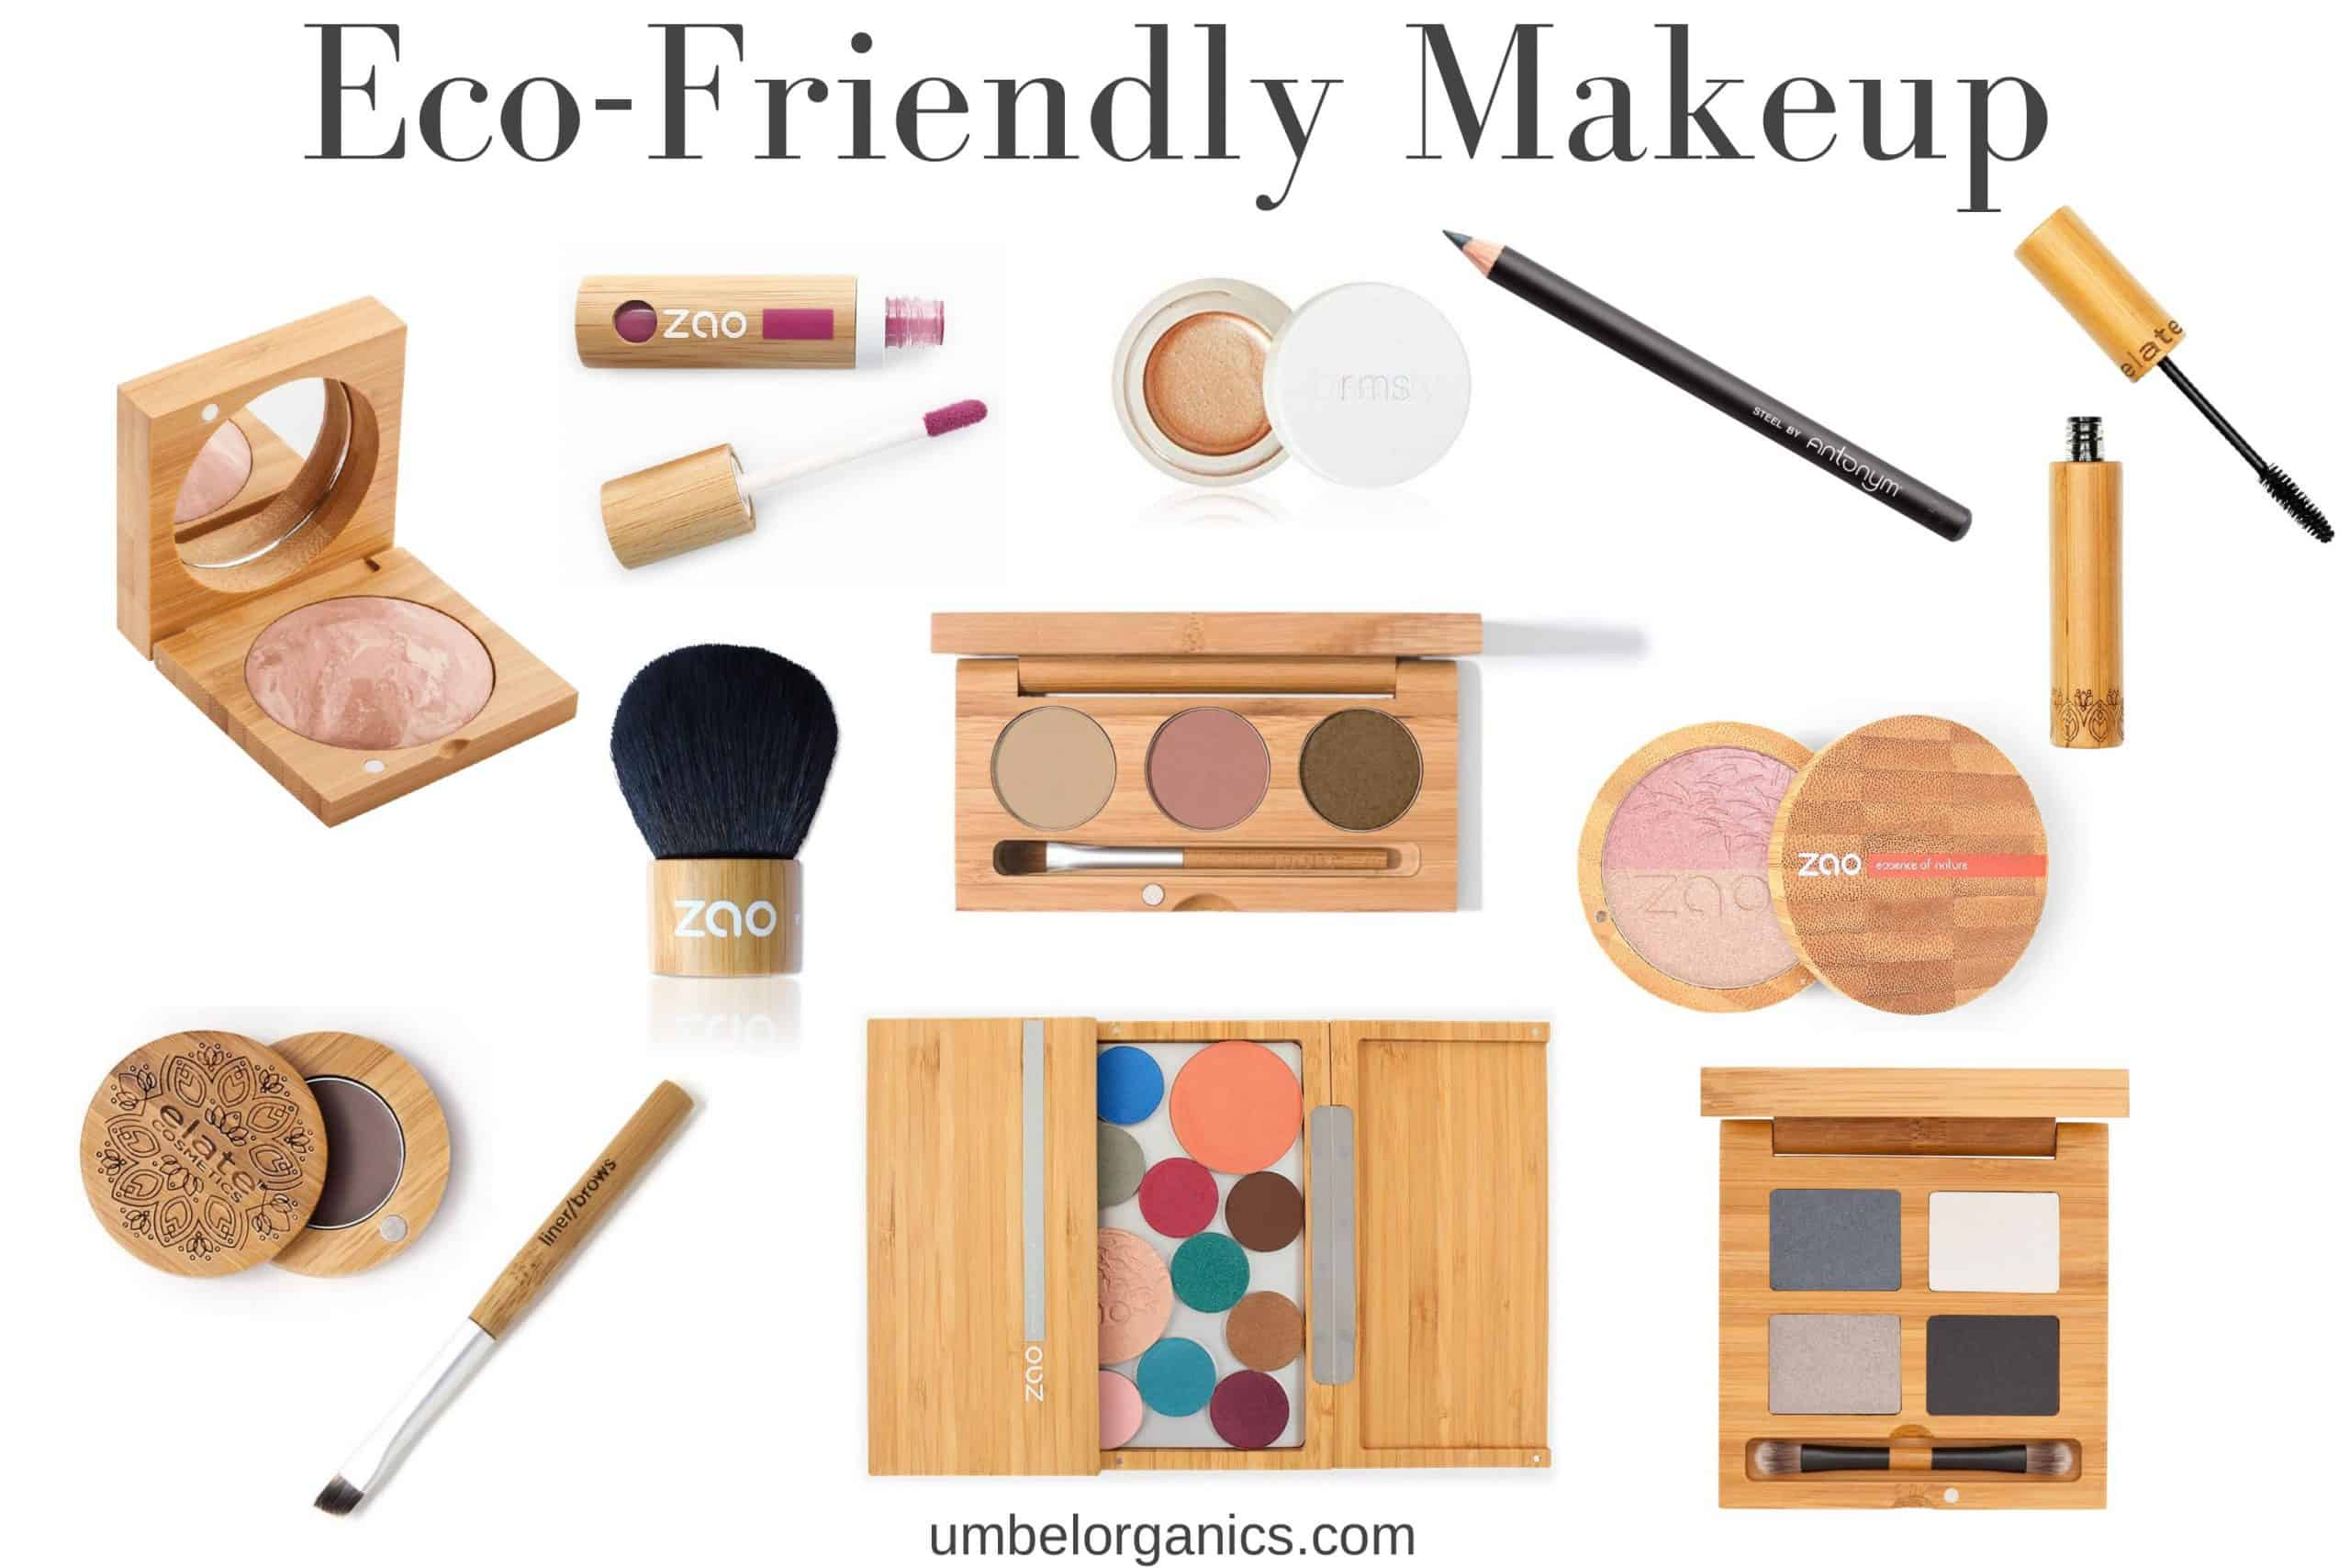 Eco-Friendly Makeup